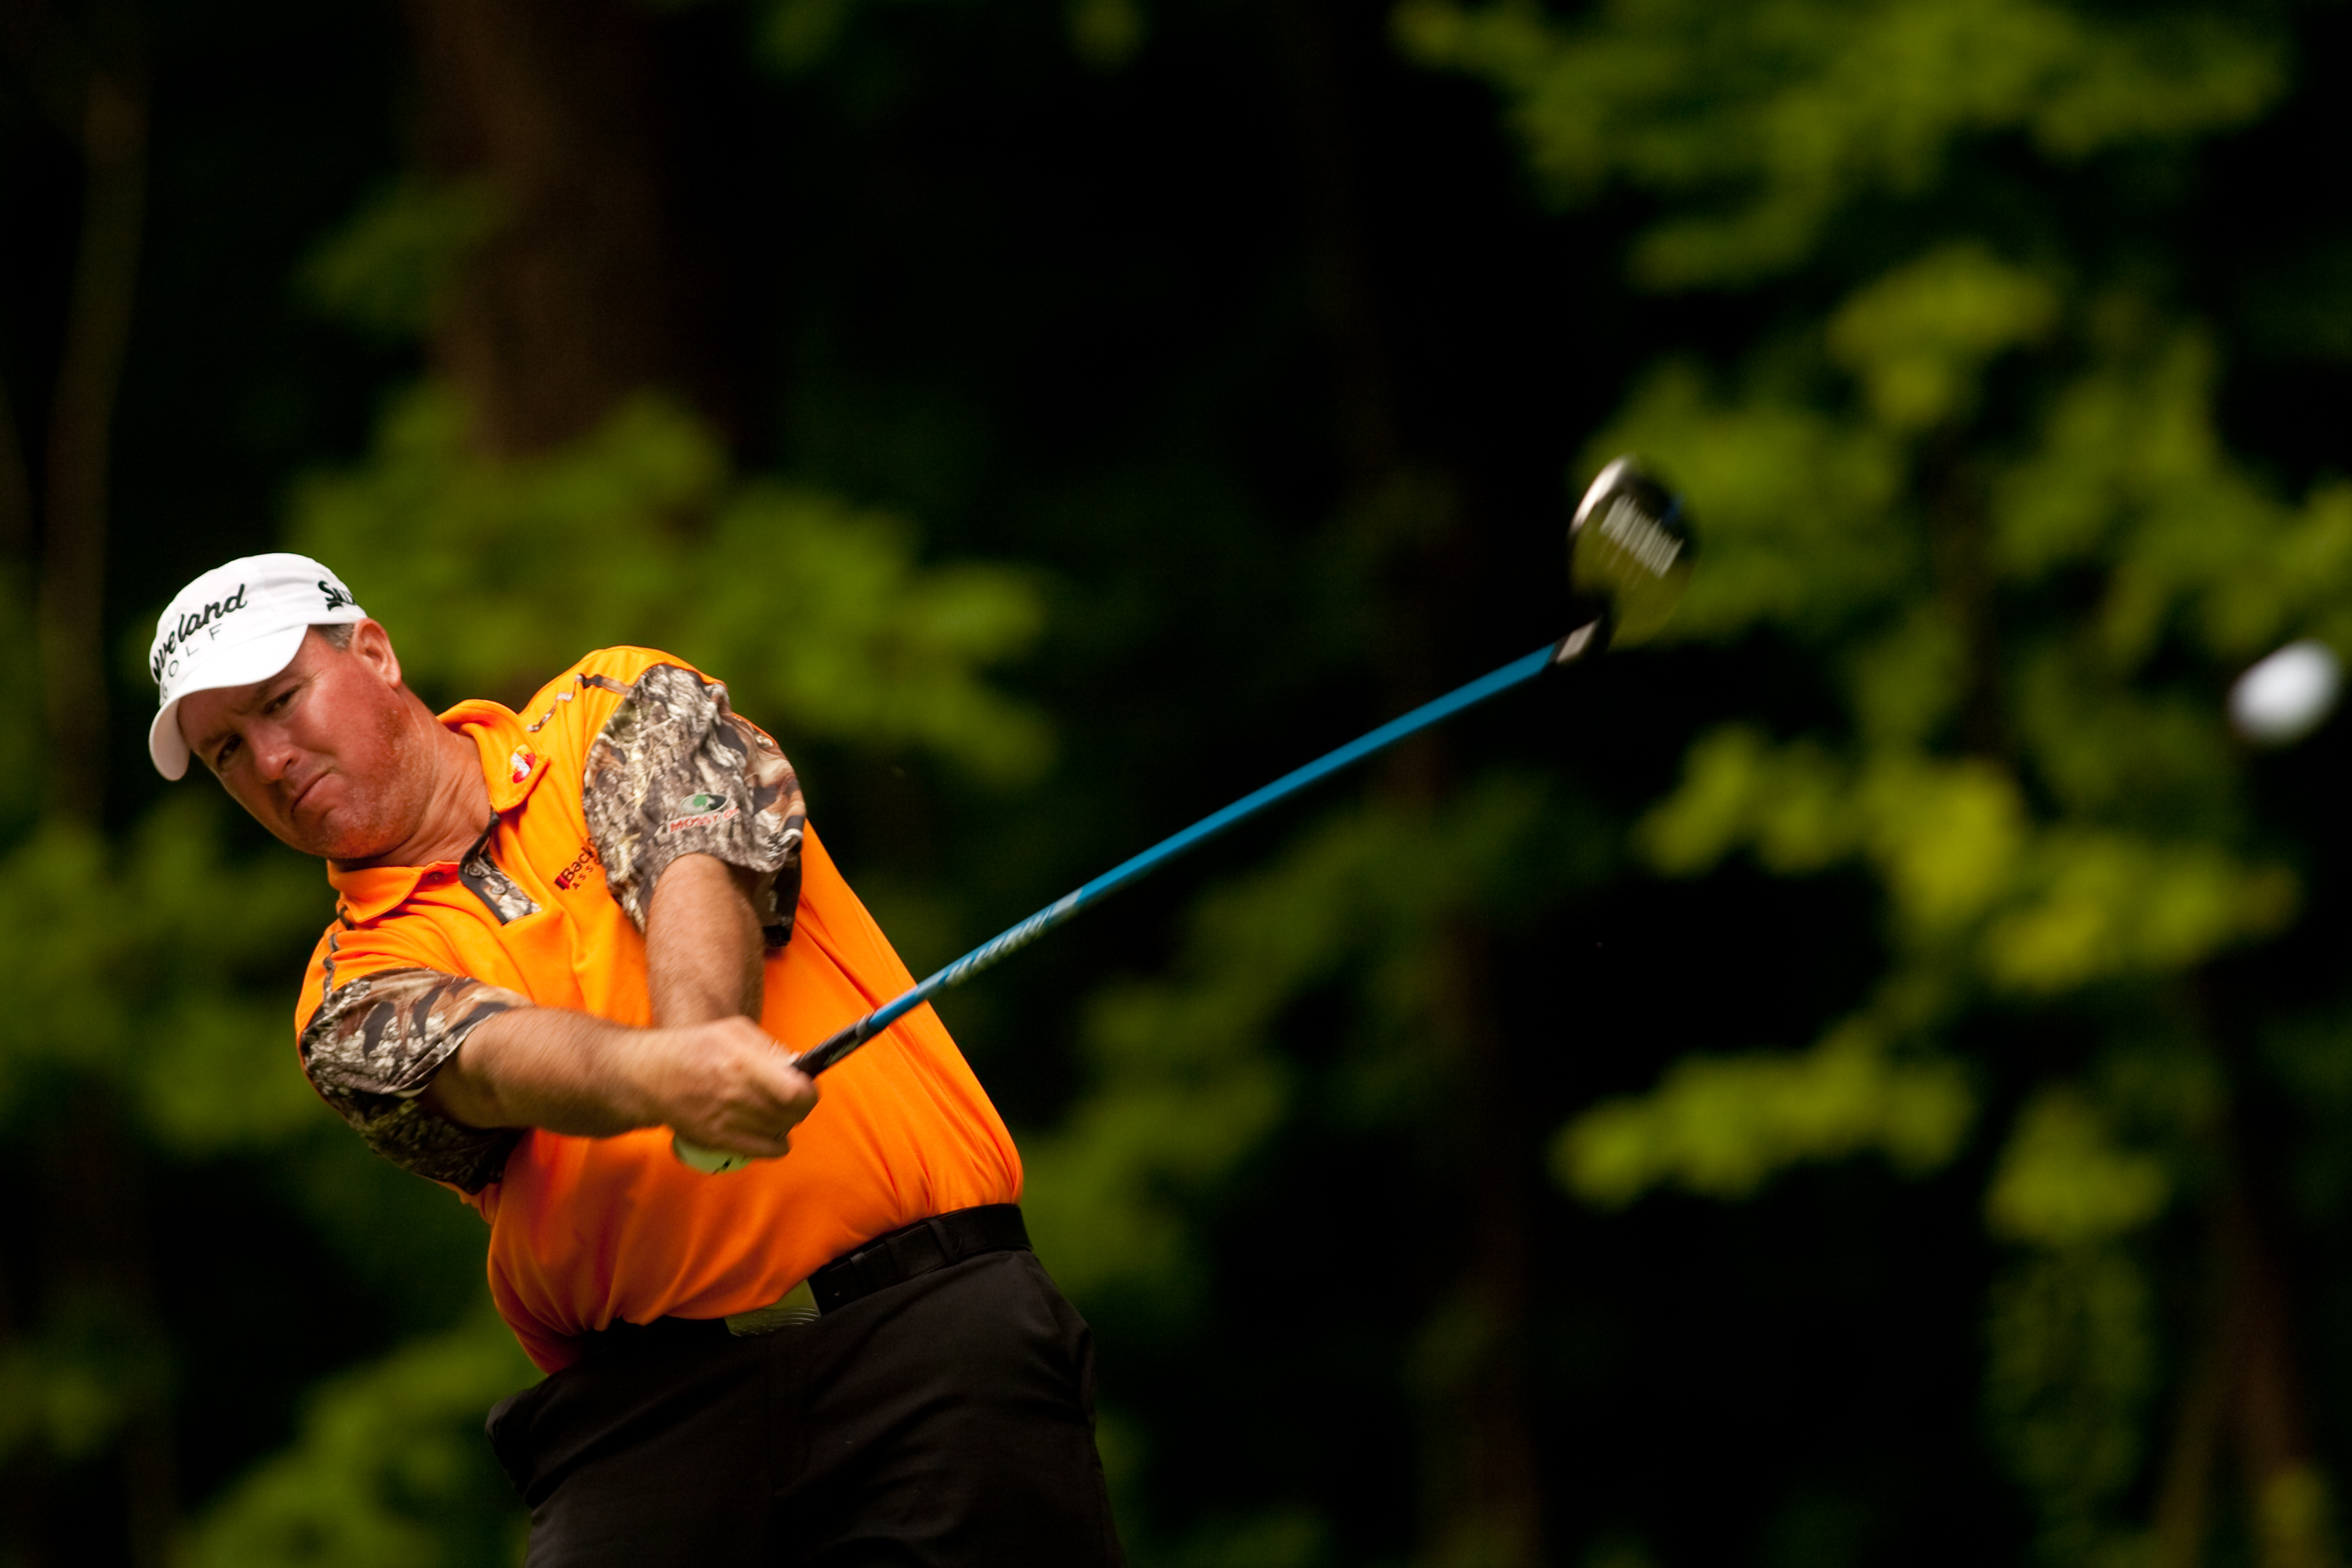 SILVIS, IL - JULY 8: Boo Weekley follows through on a tee shot during the first round of the John Deere Classic at TPC Deere Run on July 8, 2010 in Silvis, Illinois. (Photo by Darren Carroll/Getty Images)